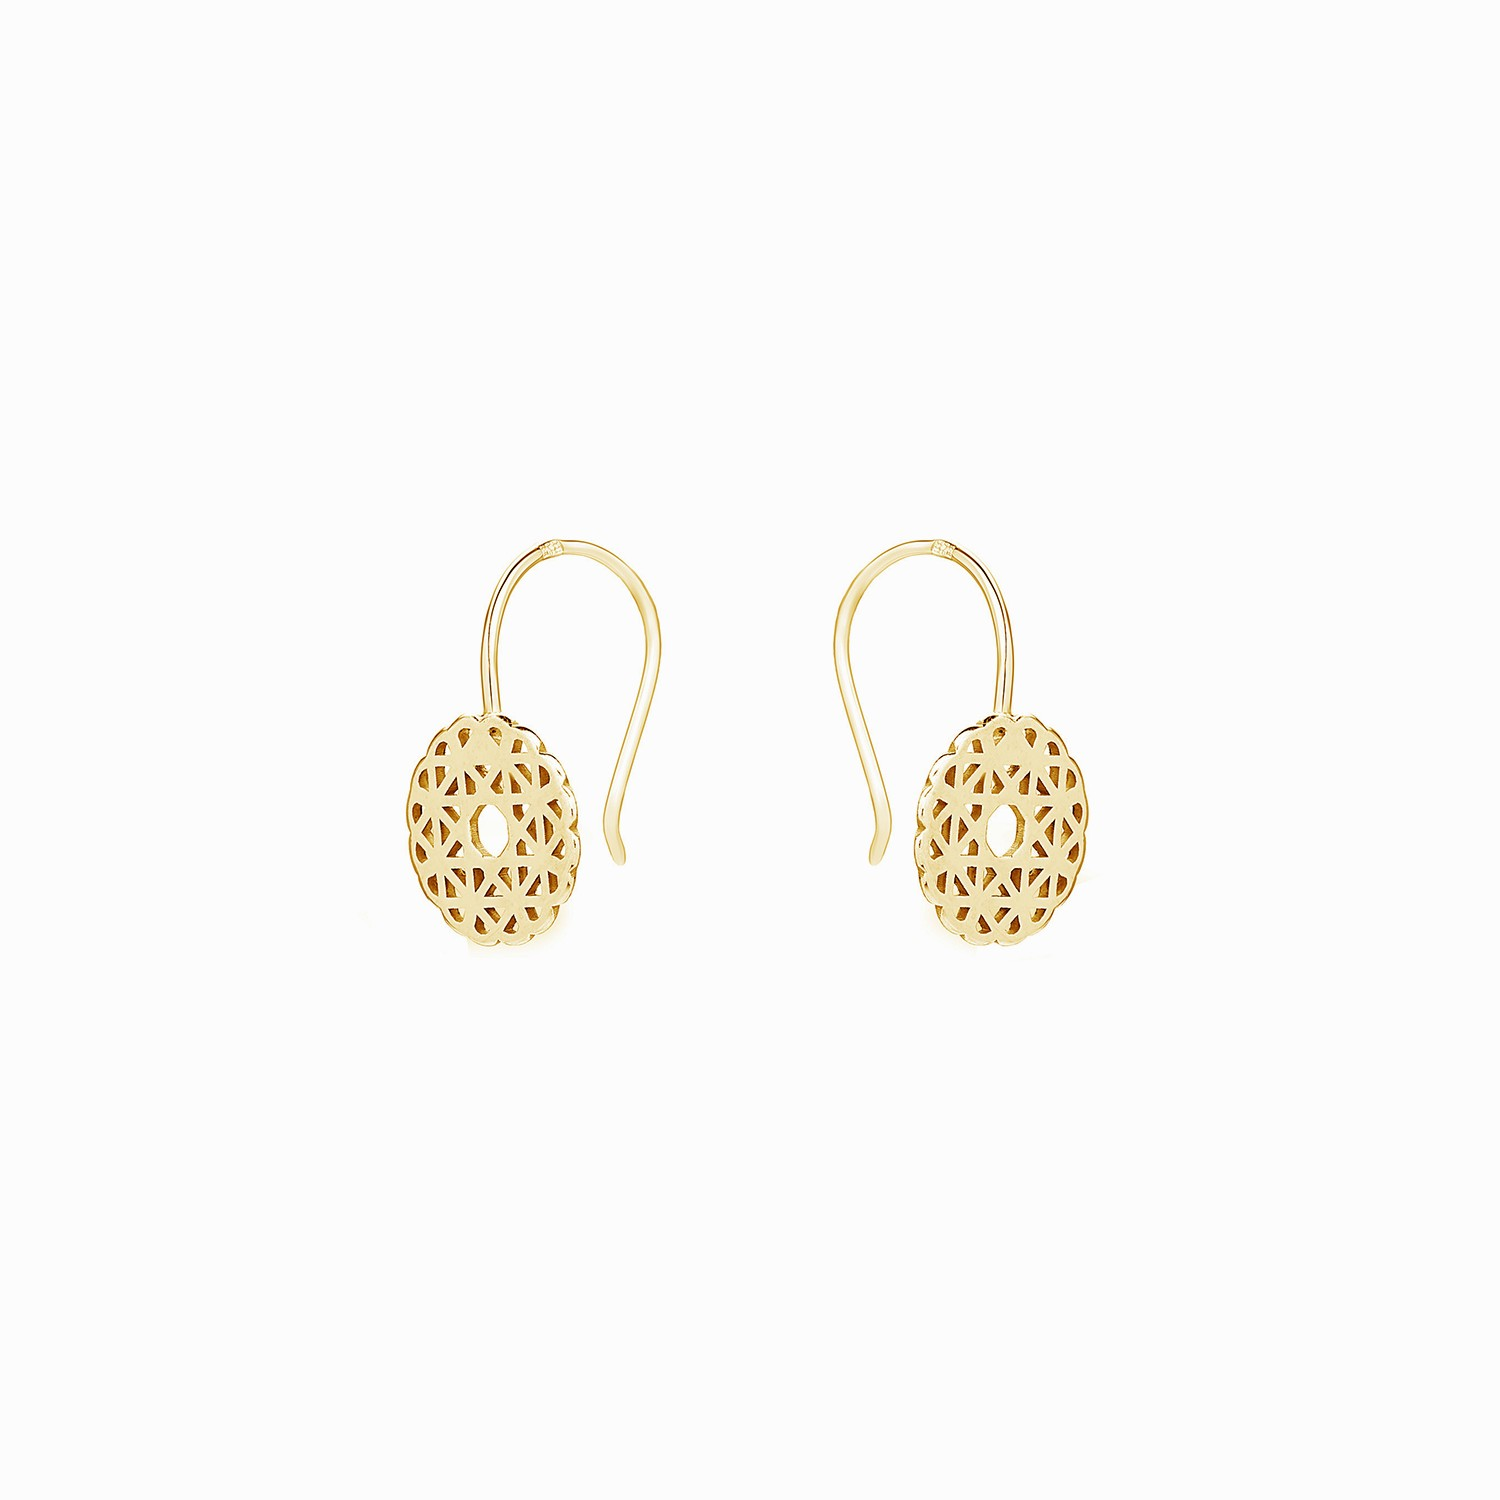 more at online golden buy earrings product much